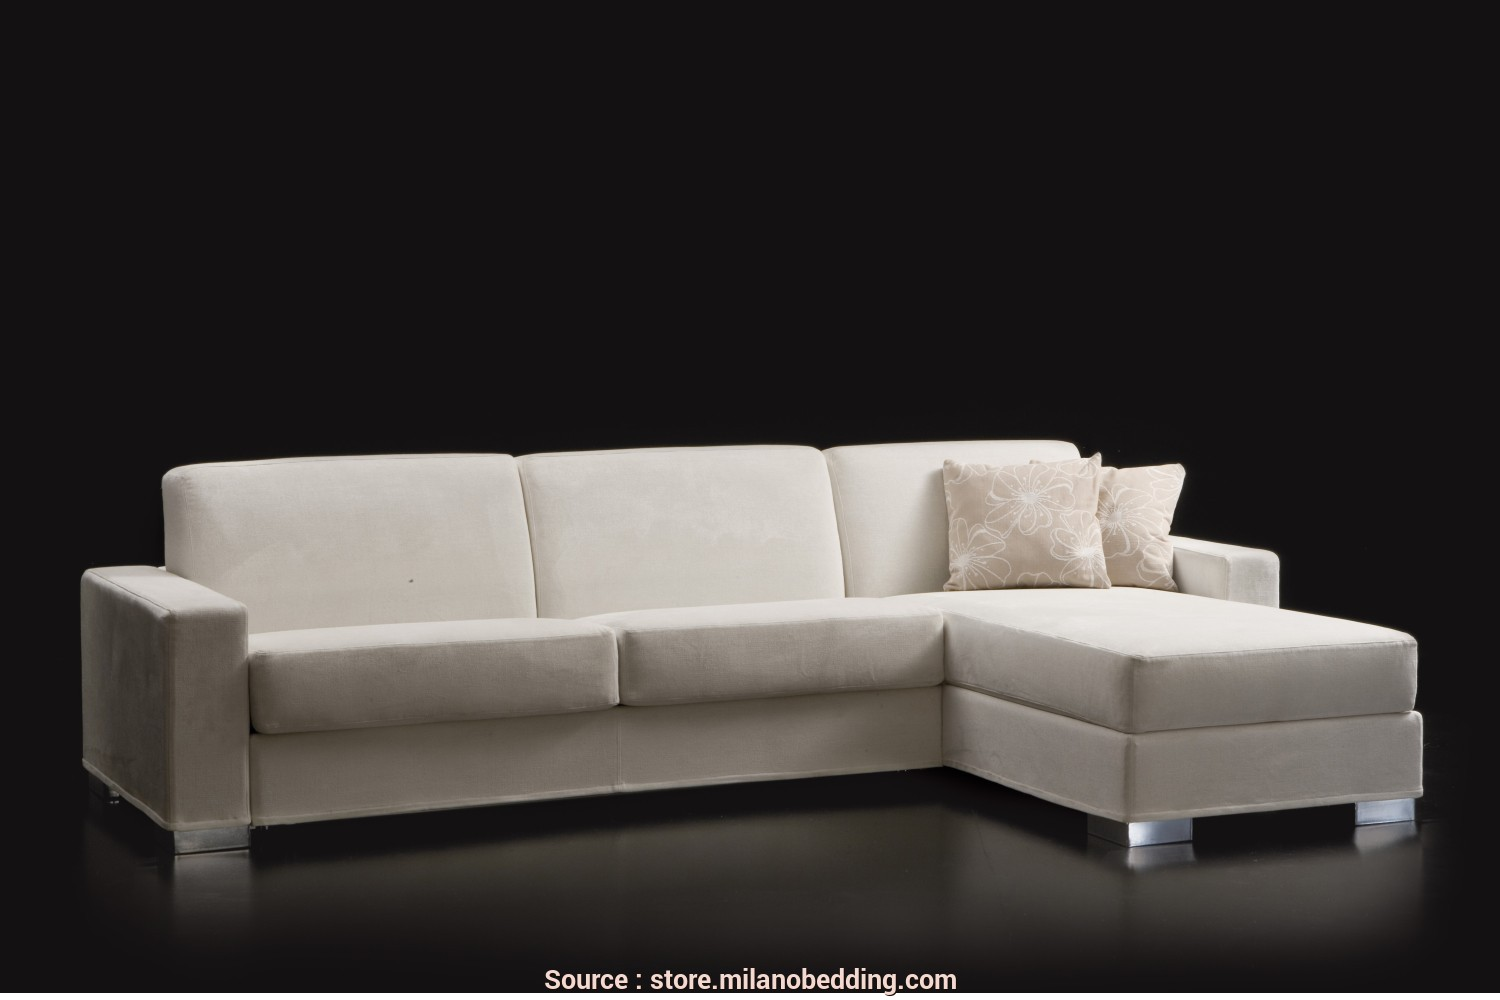 Divano Chaise Longue, Cm, Esclusivo Duke Convertible Sofa With Storage Chaise Longue, That, Be Turned Into A Double Bed